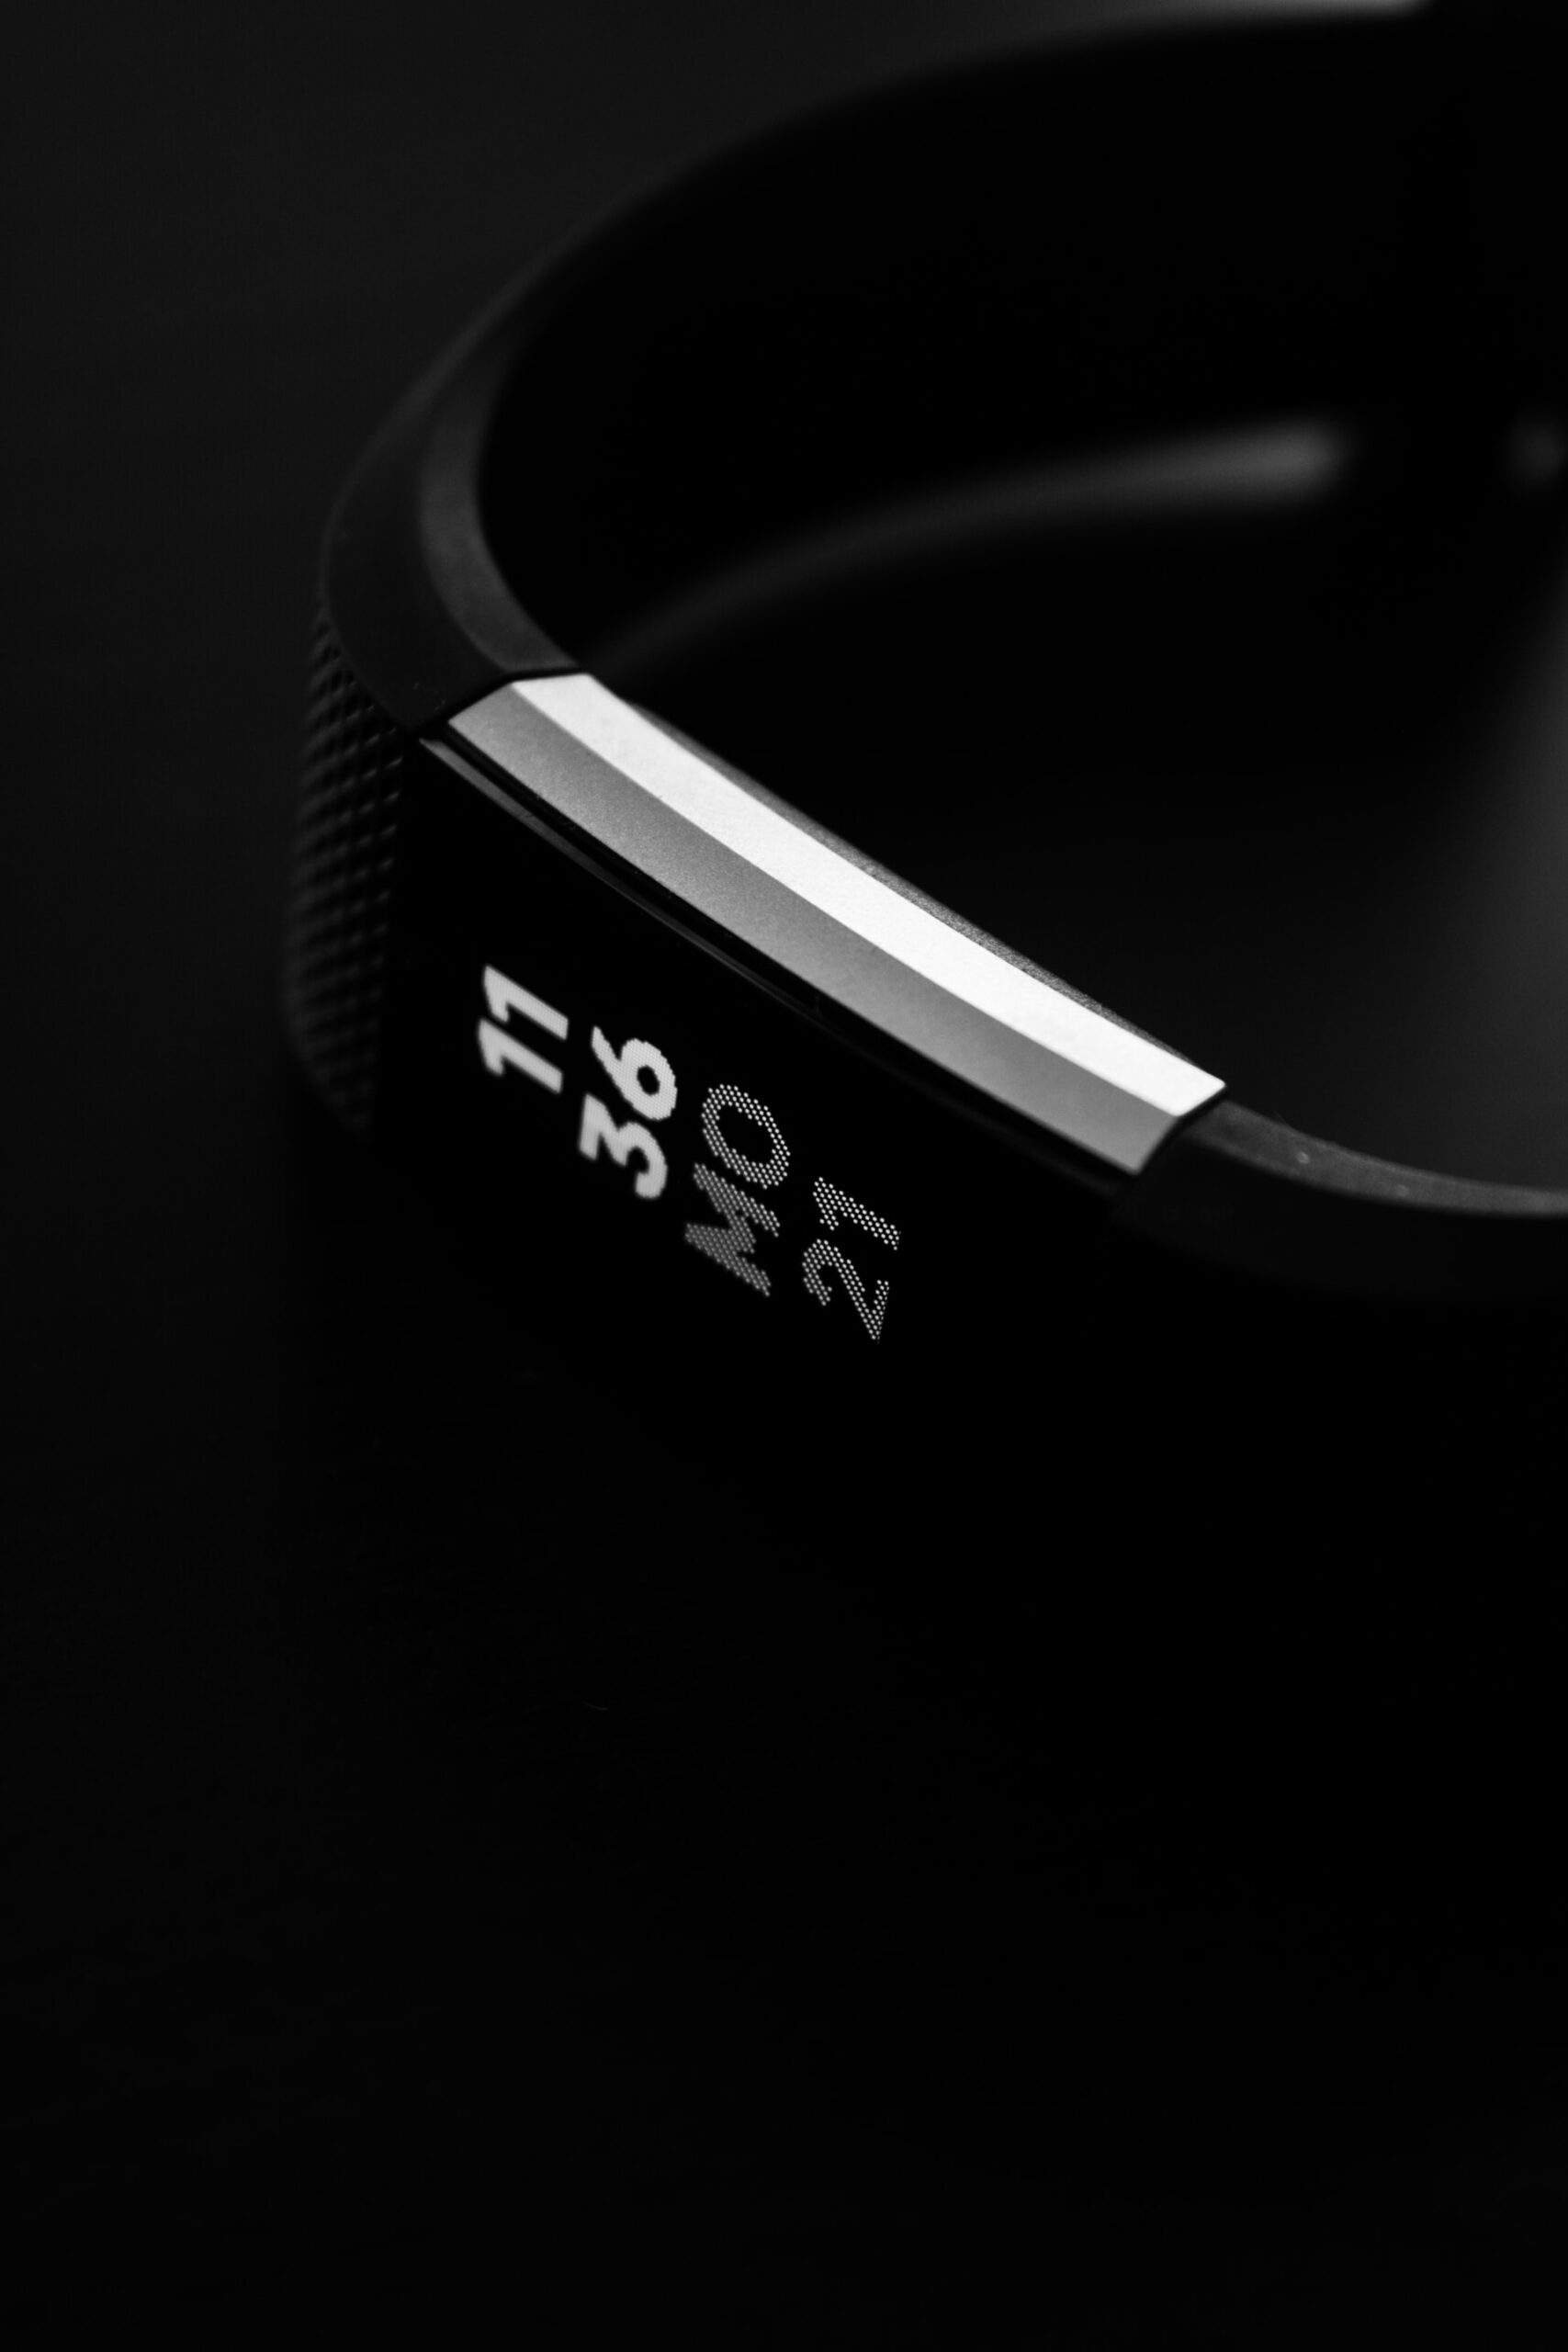 Facebook Announces Development of a Wristband with Mind-Reading AR Tech